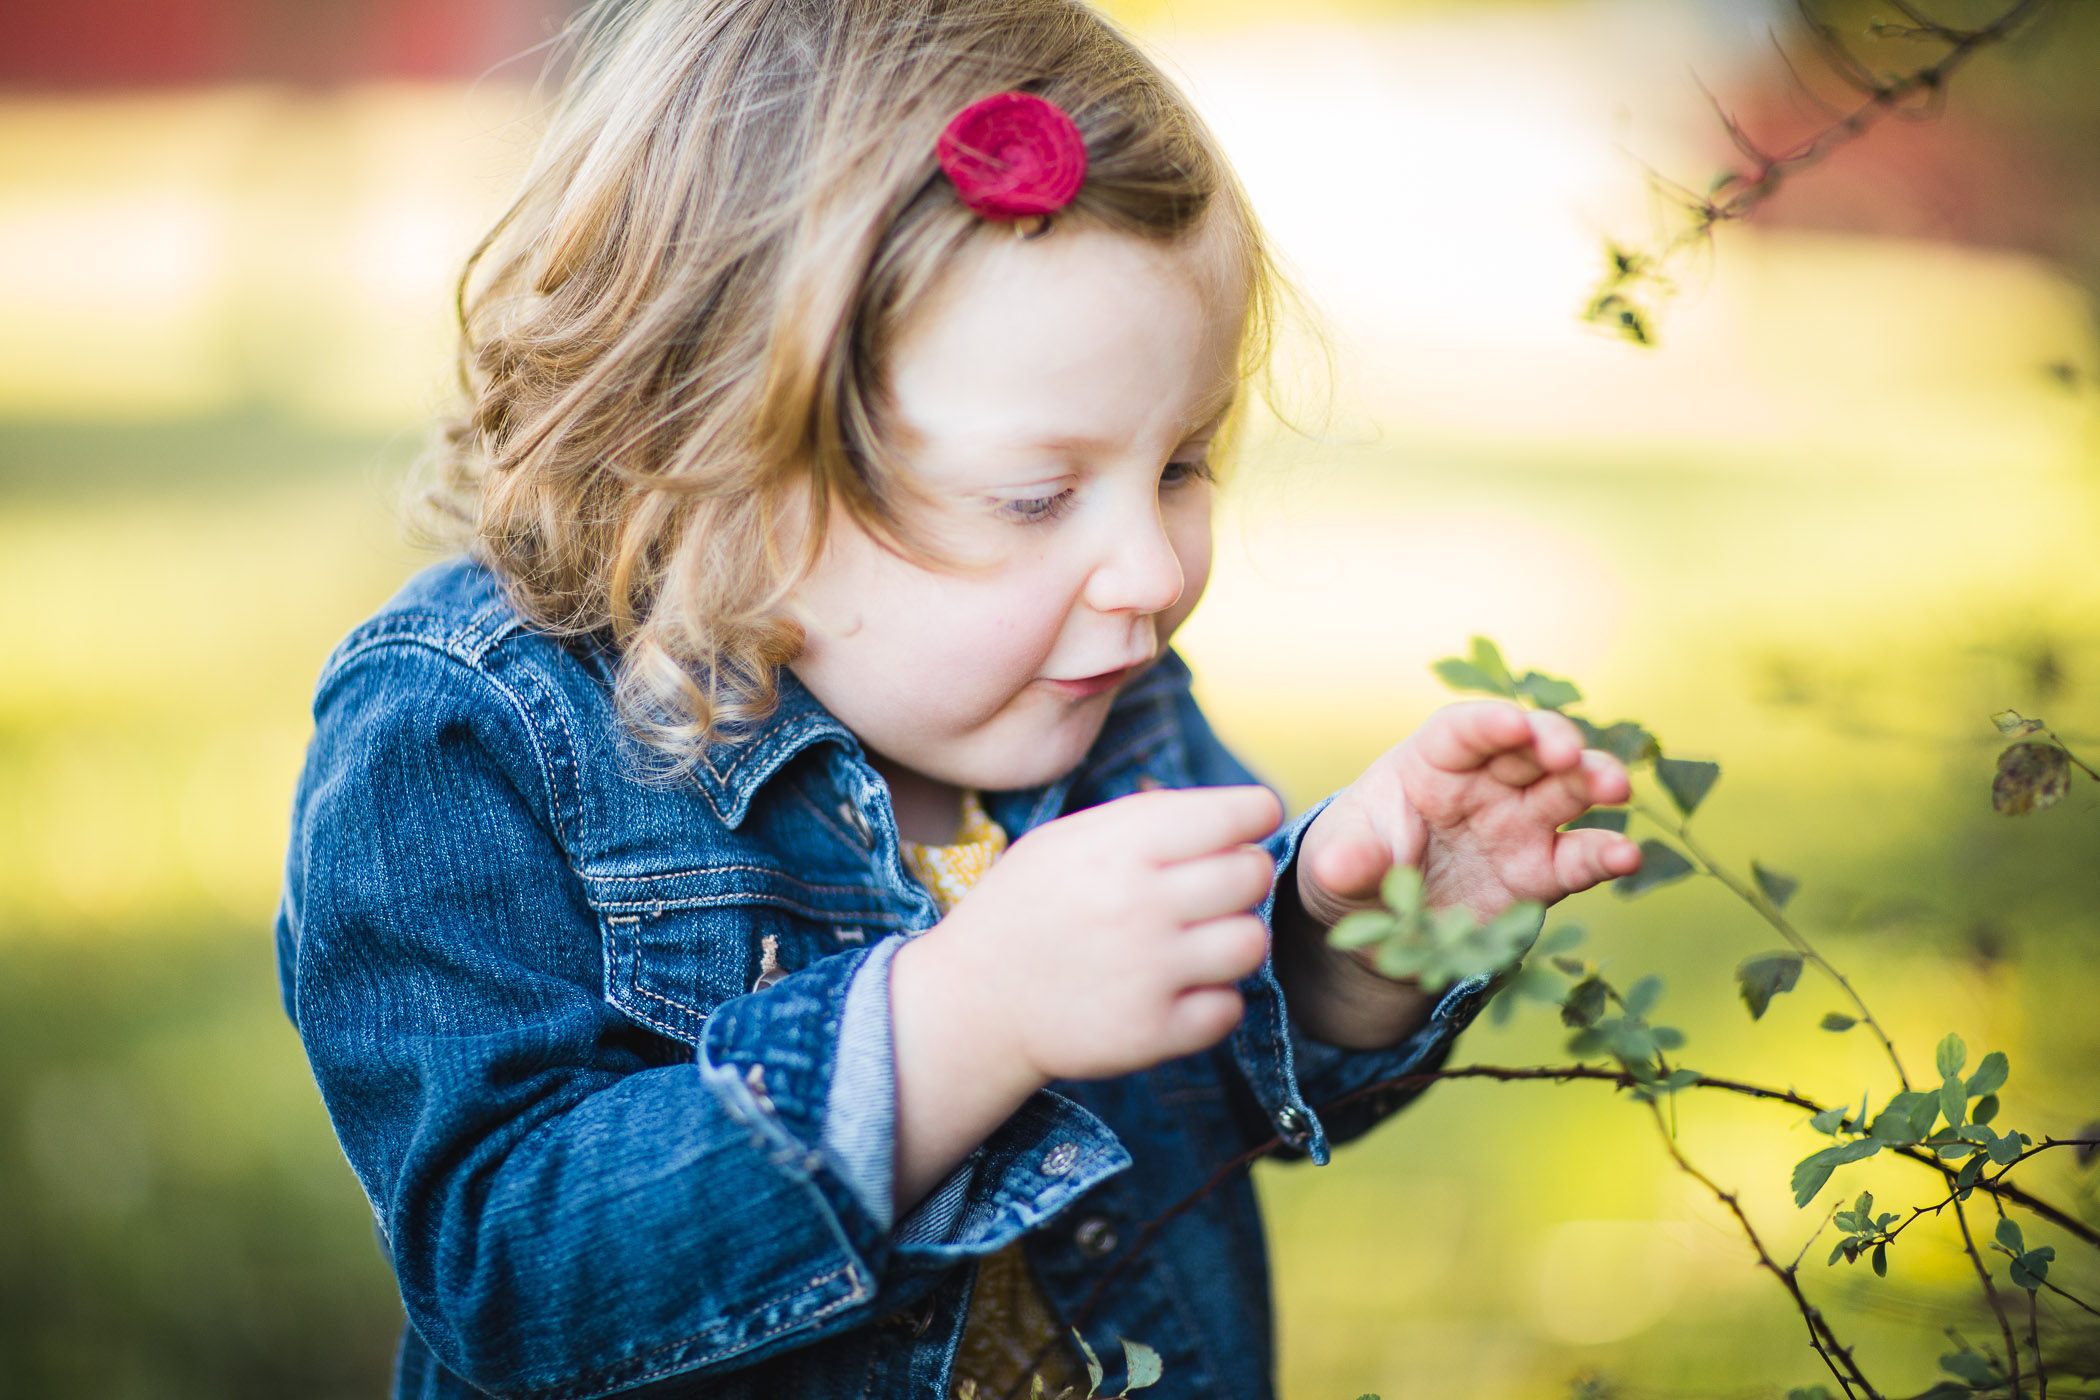 A Colorful Two-Part Autumn Family Session from Felipe 18